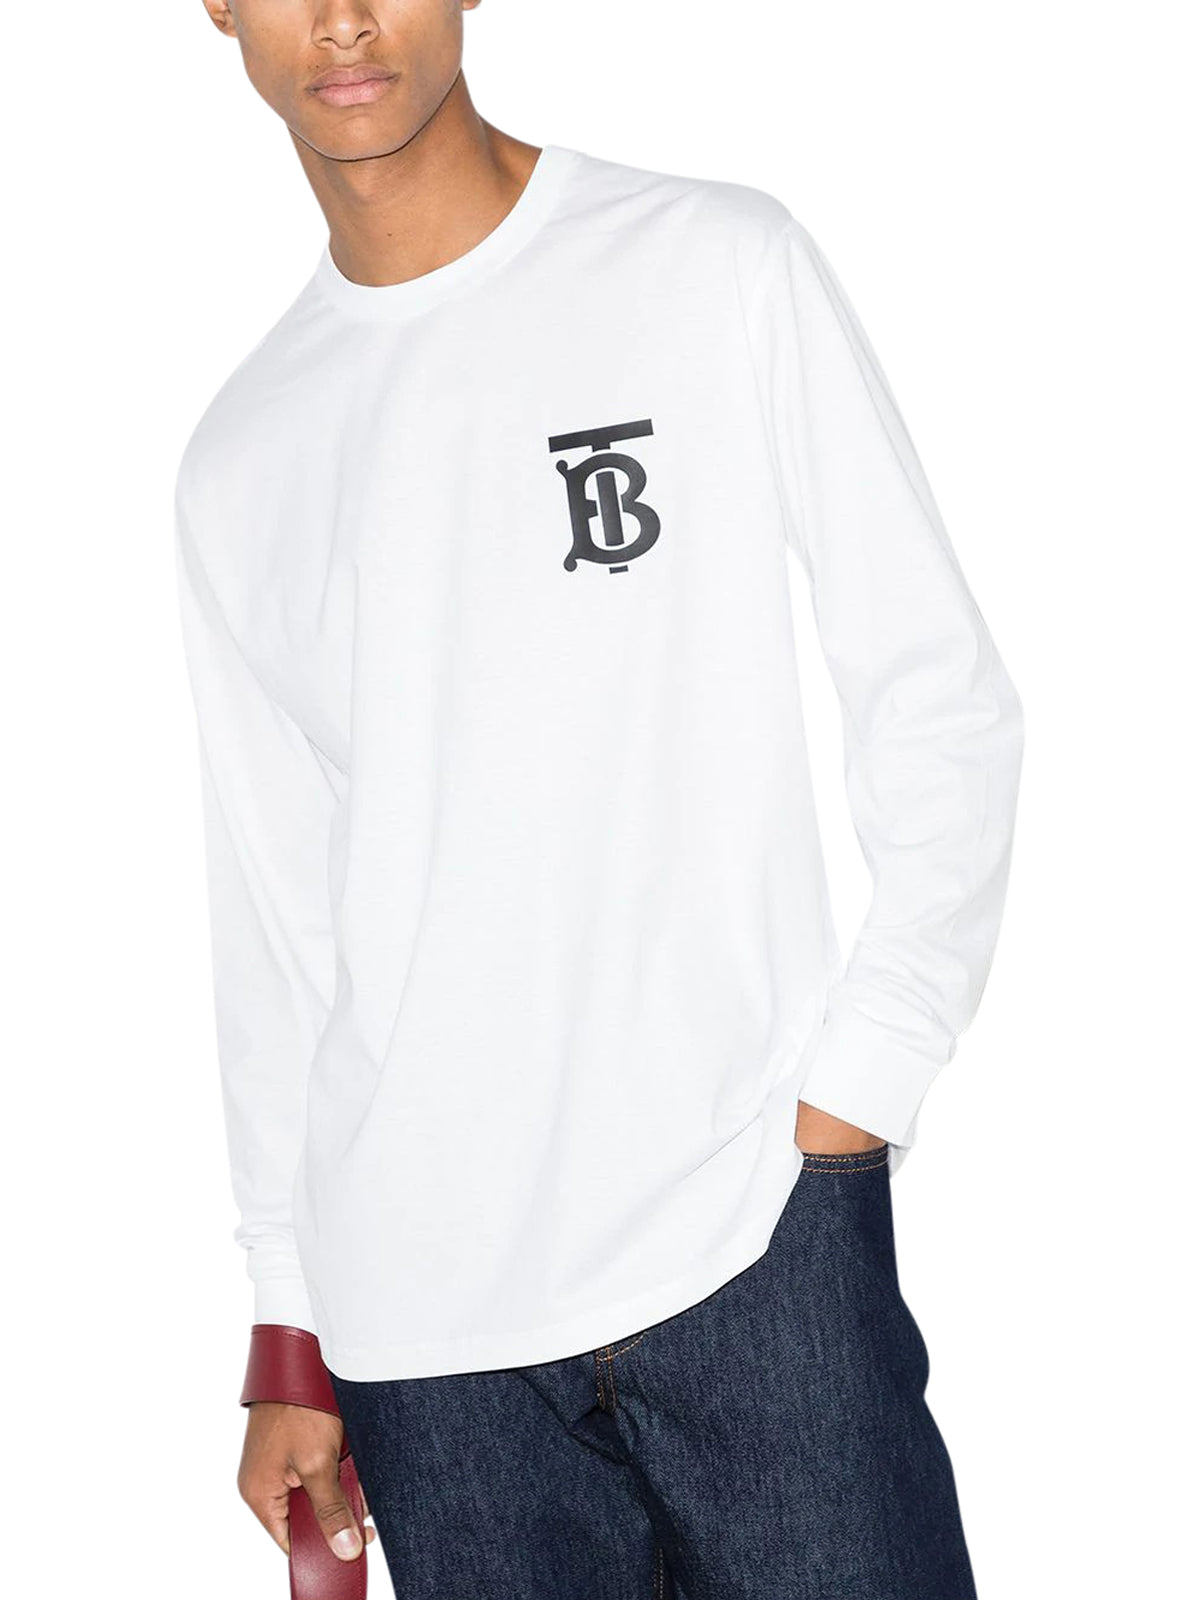 Atherton logo long sleeve T-shirt